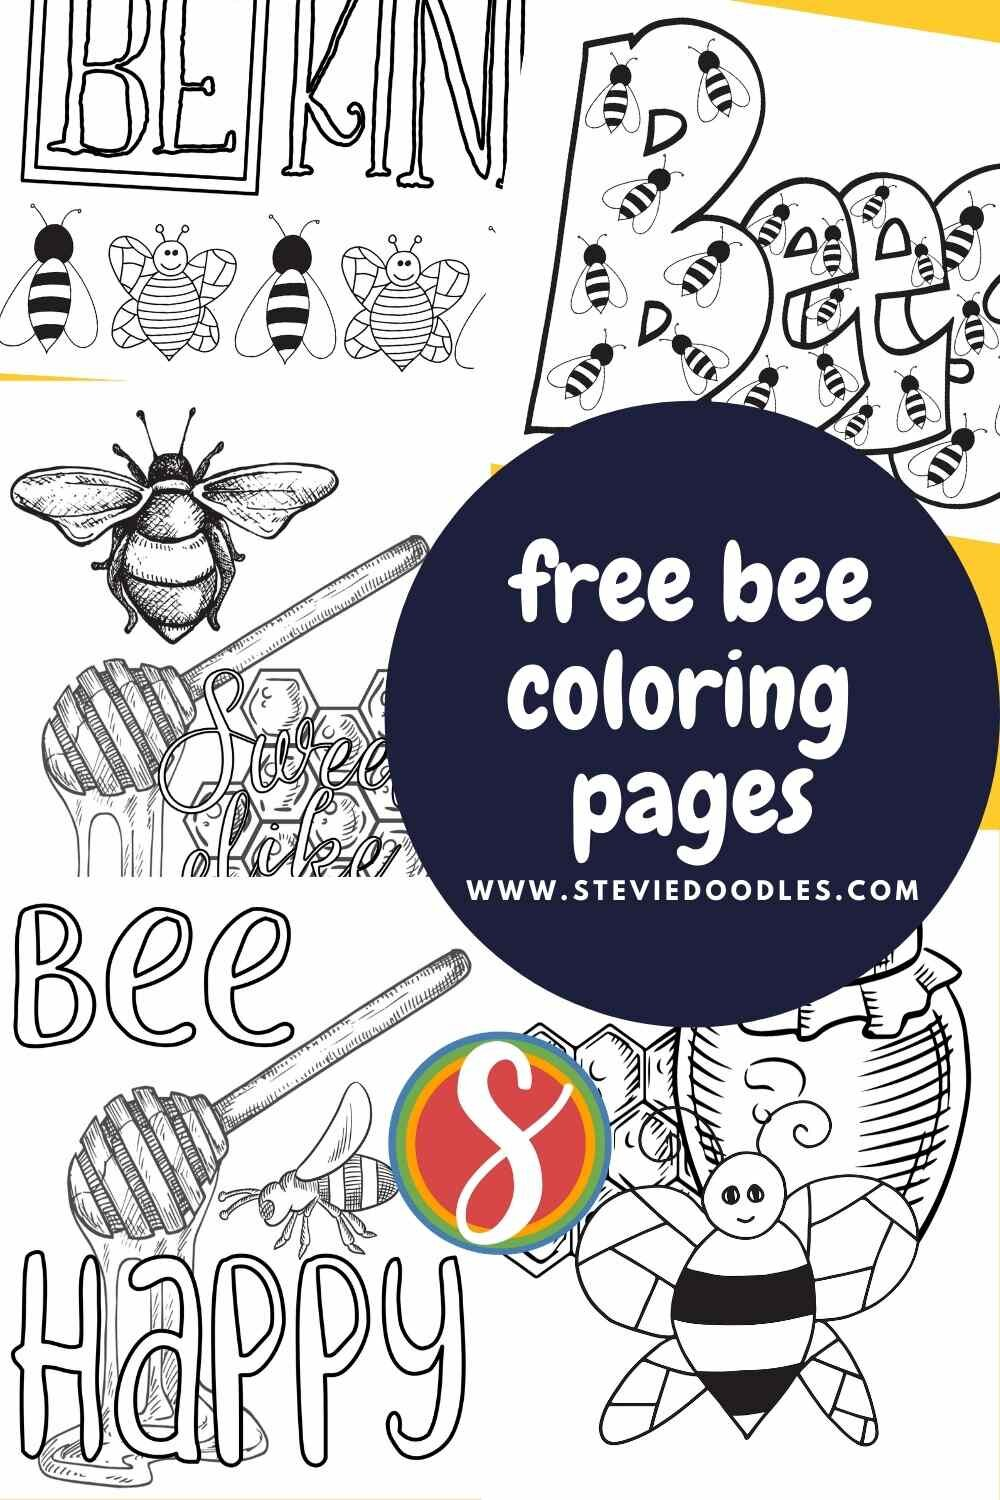 Bee Coloring Pages! A whole bunch of free printable bee coloring sheets to print and color from Stevie Doodles